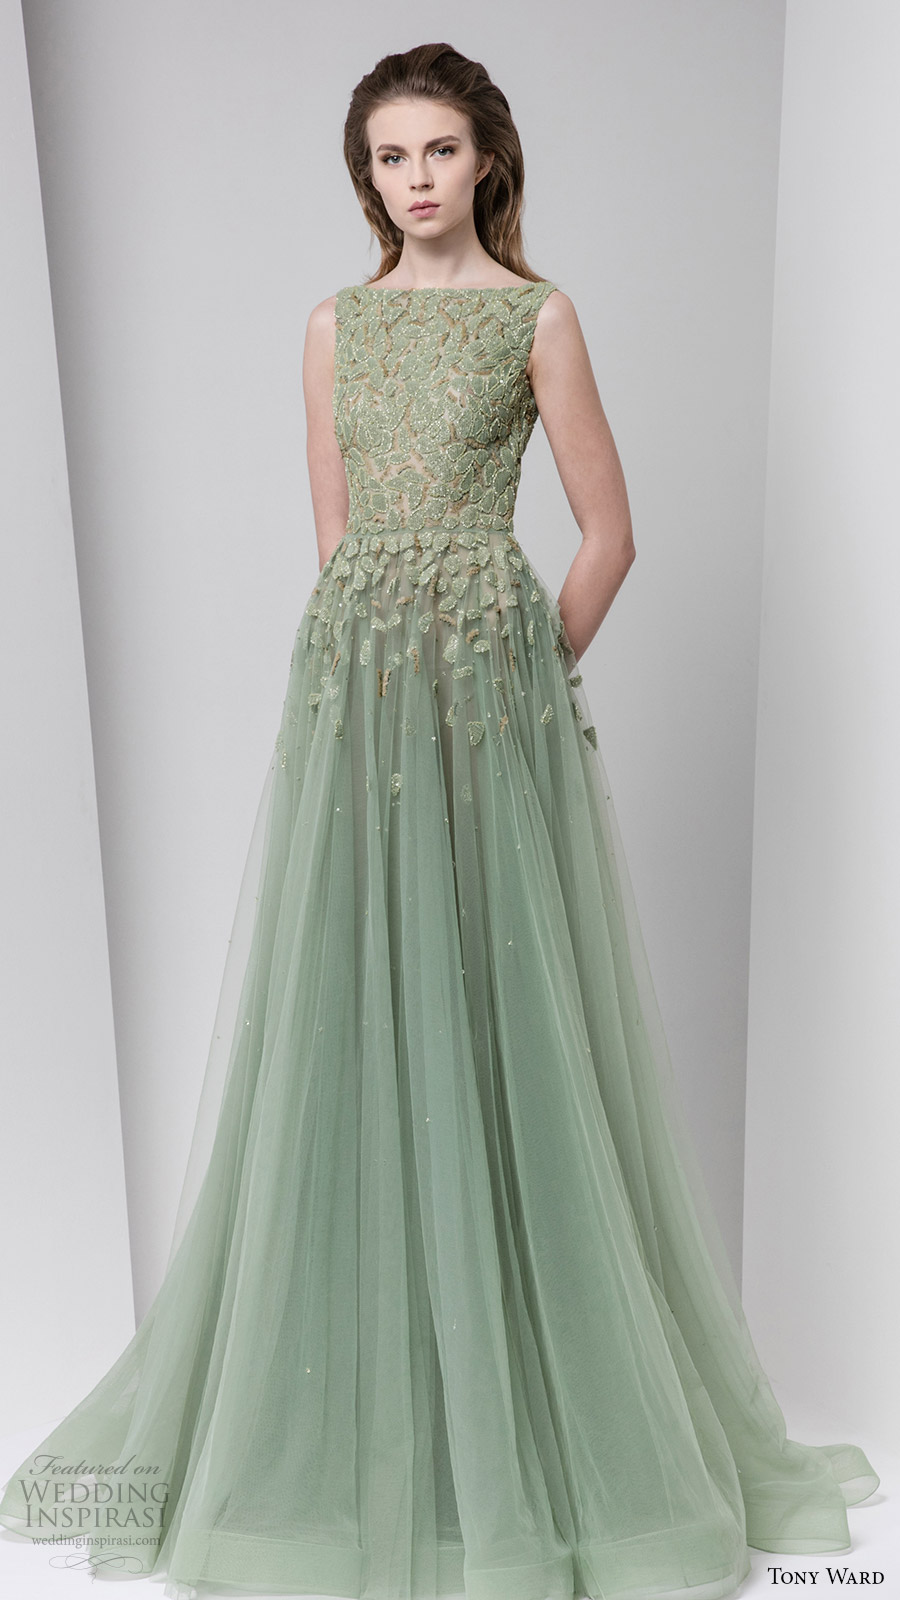 Tony Ward Fall 2016 Ready To Wear Dresses Wedding Inspirasi